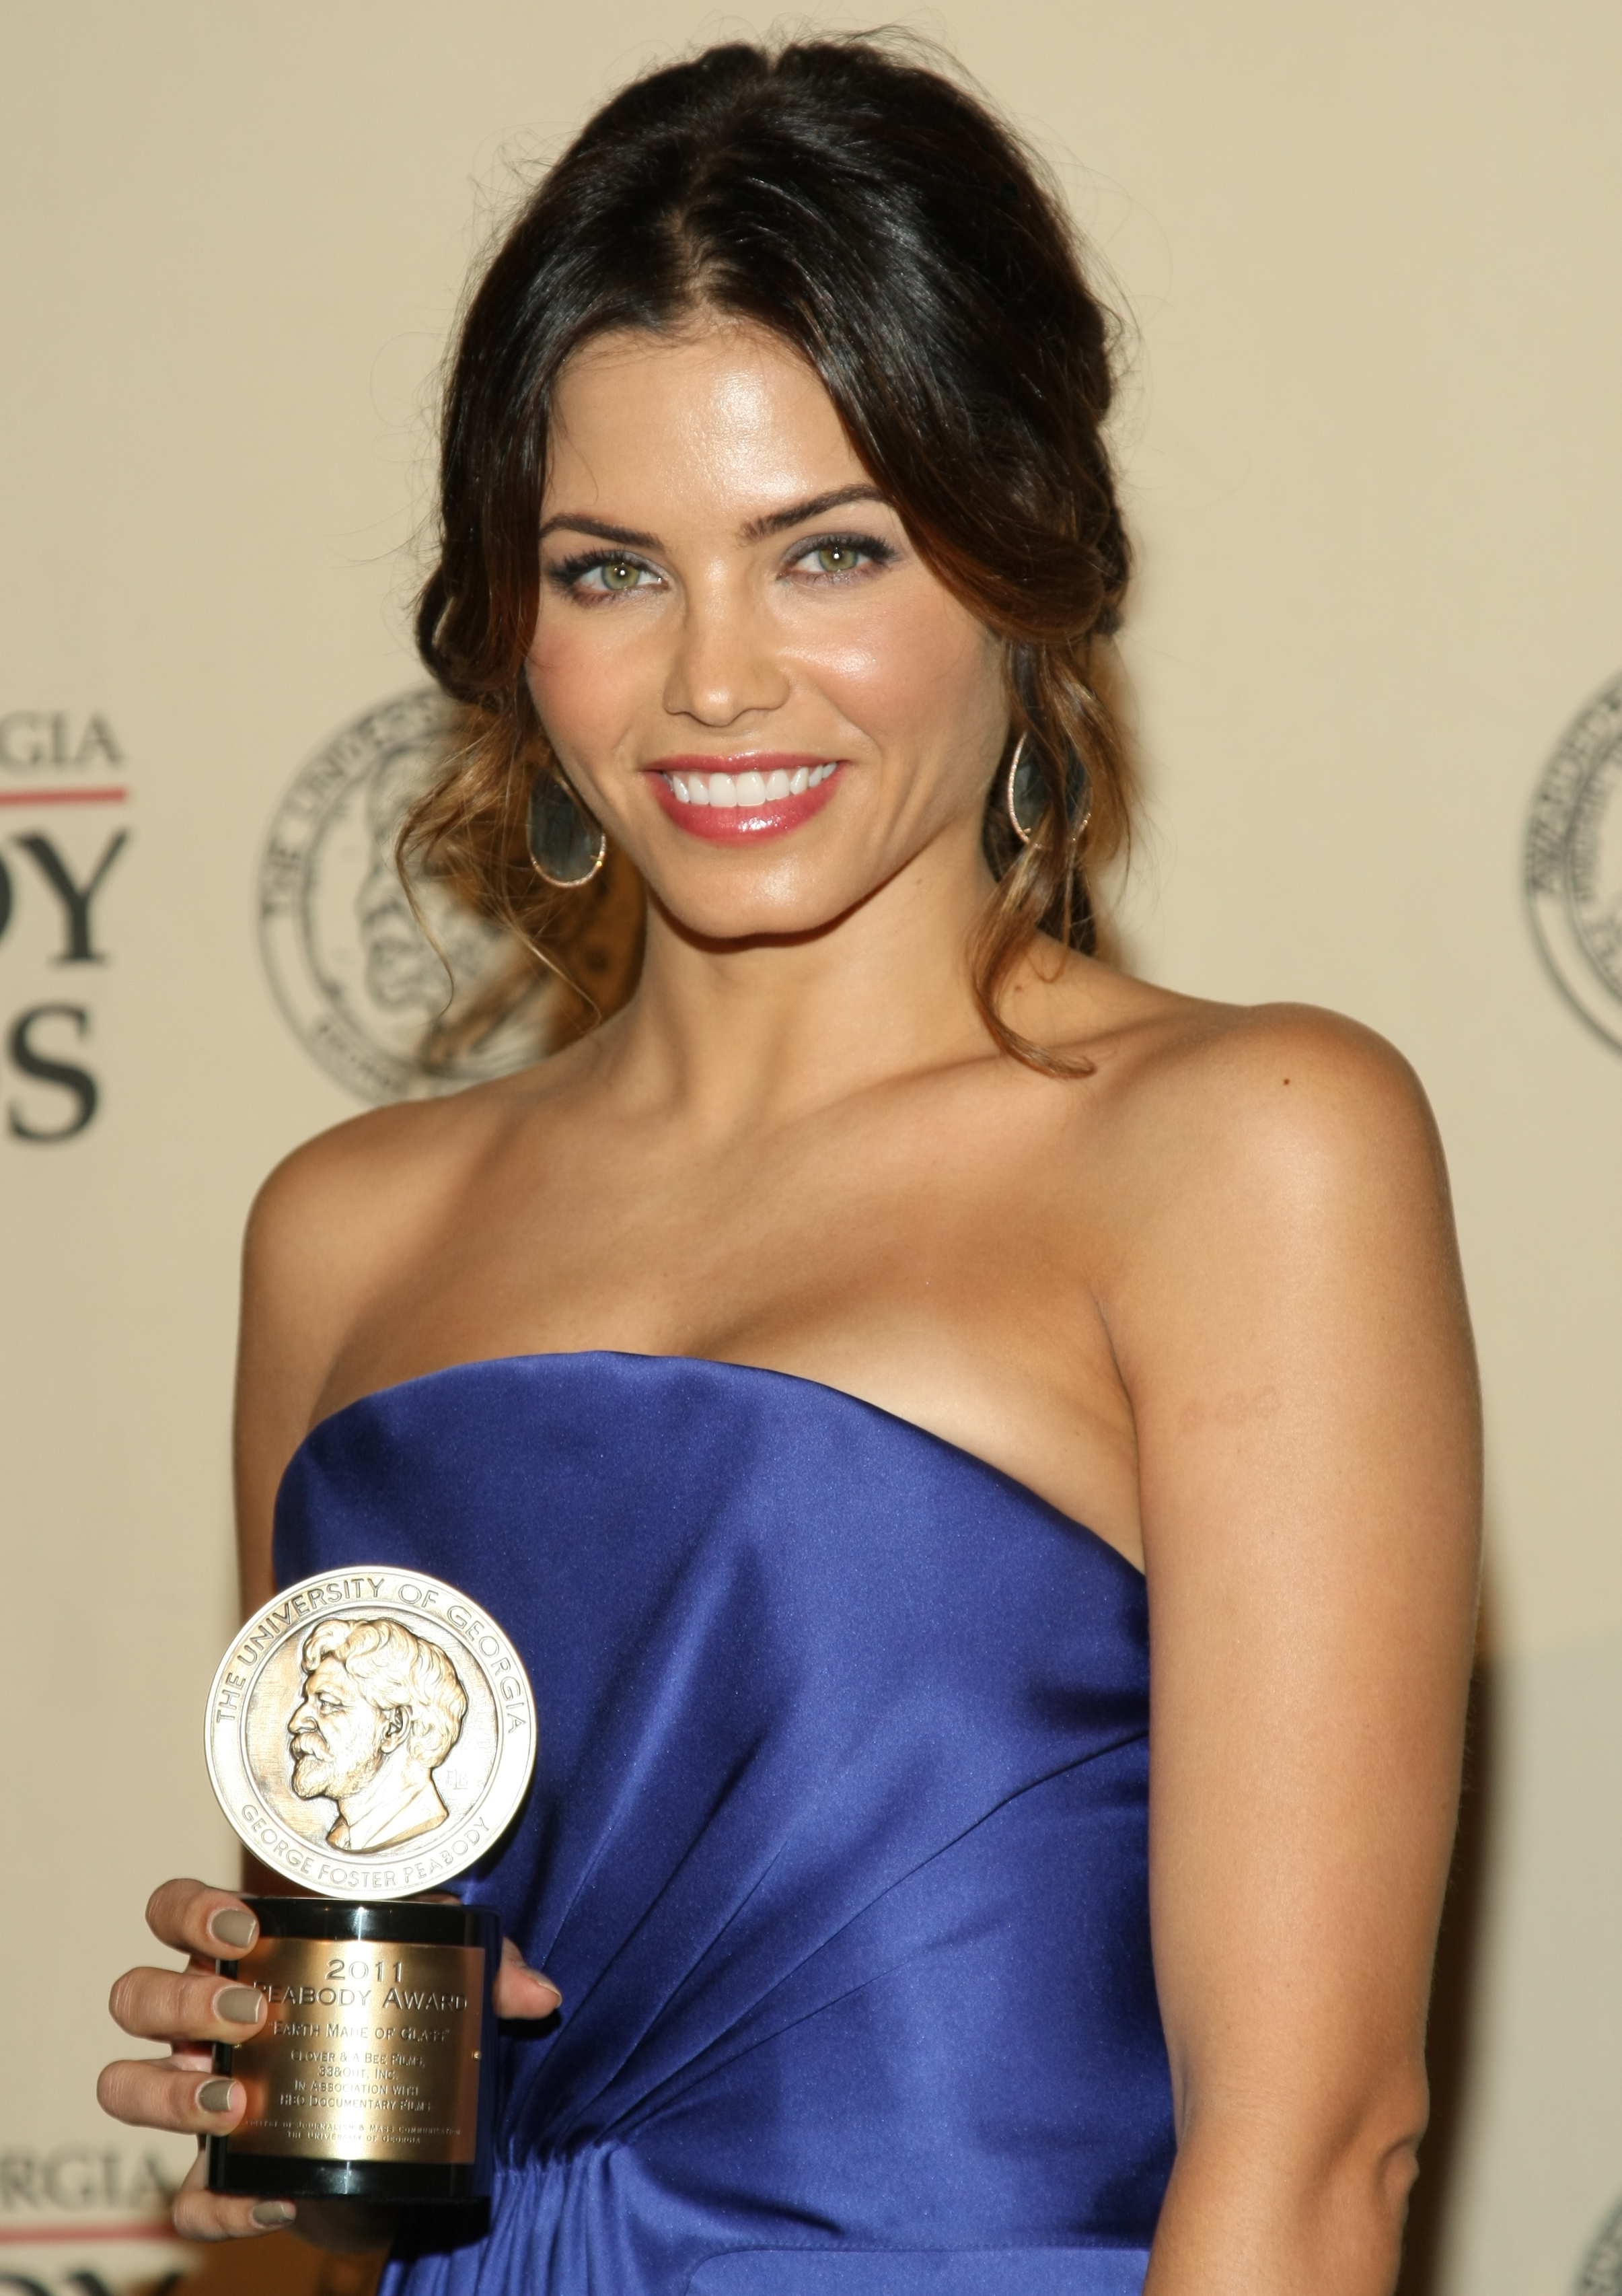 The 40-year old daughter of father Darryll Dewan and mother ancy Lee Bursch Smith Jenna Dewan Tatum in 2021 photo. Jenna Dewan Tatum earned a  million dollar salary - leaving the net worth at 6 million in 2021